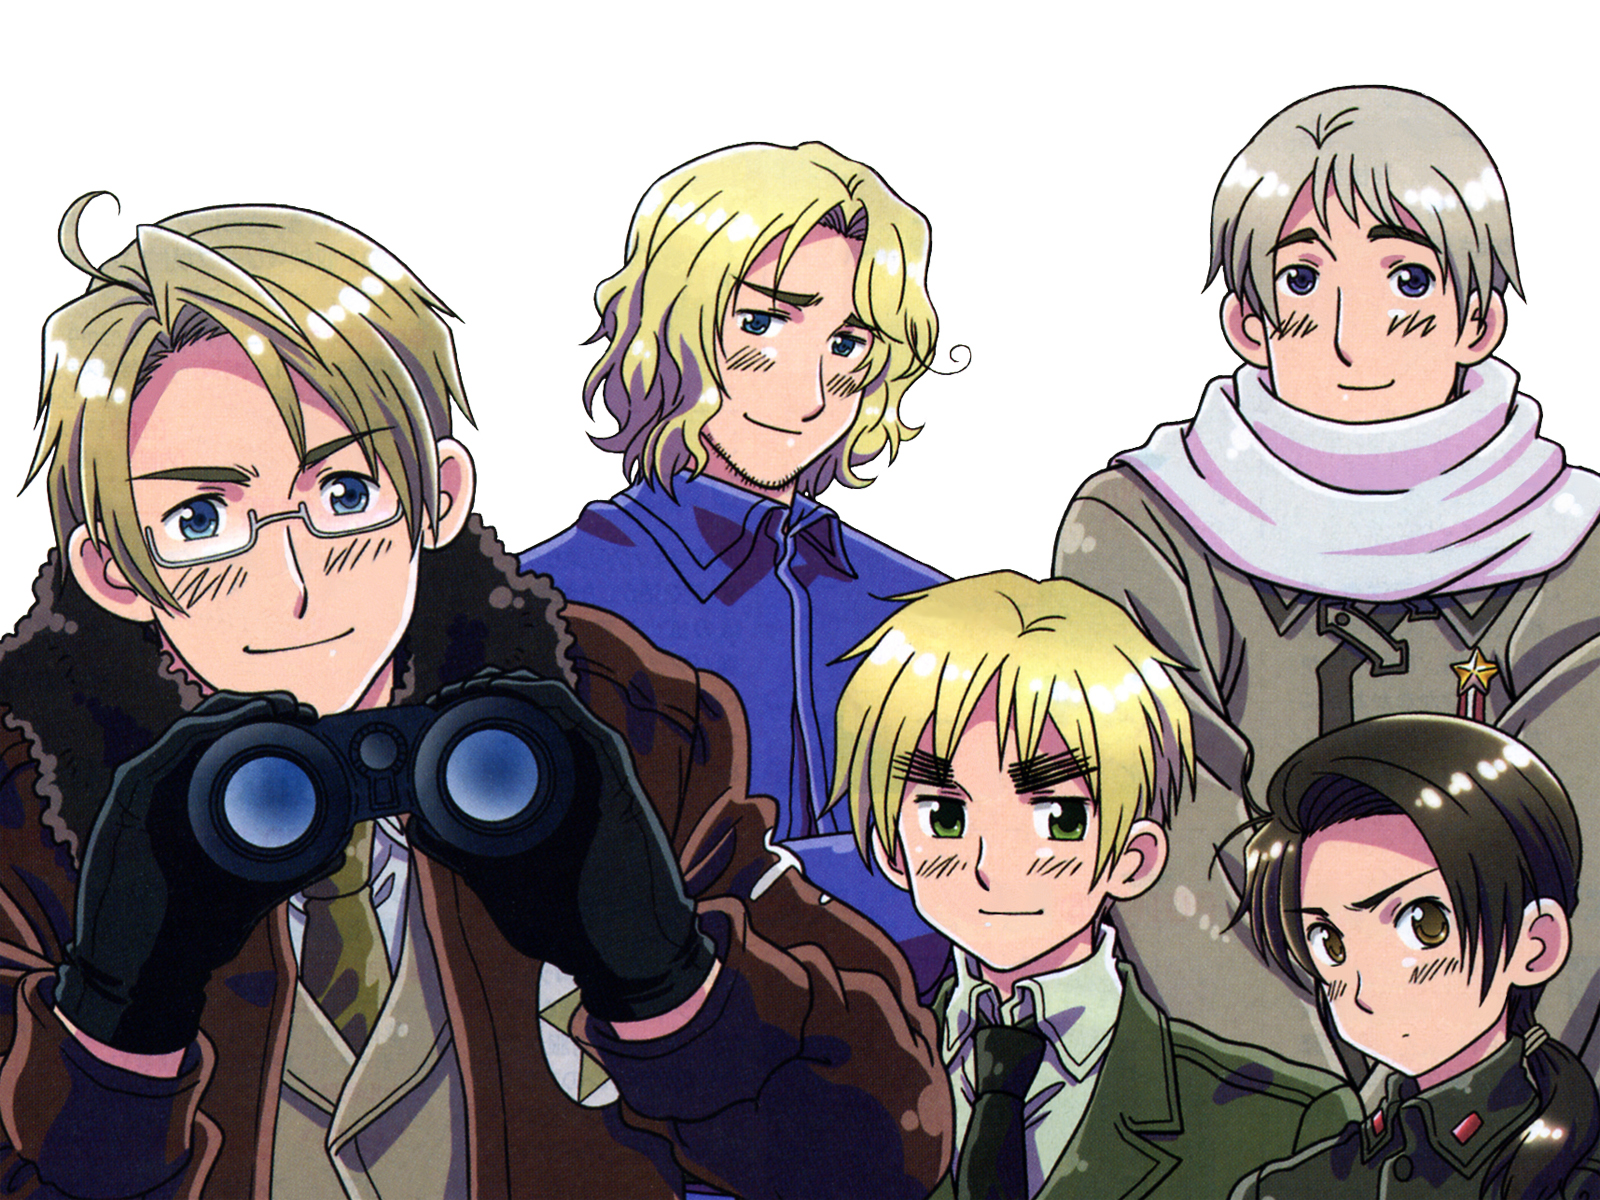 Hetalia Axis Powers Axis Powers Hetalia Hetalia Axis Powers Wallpaper 1600x1200